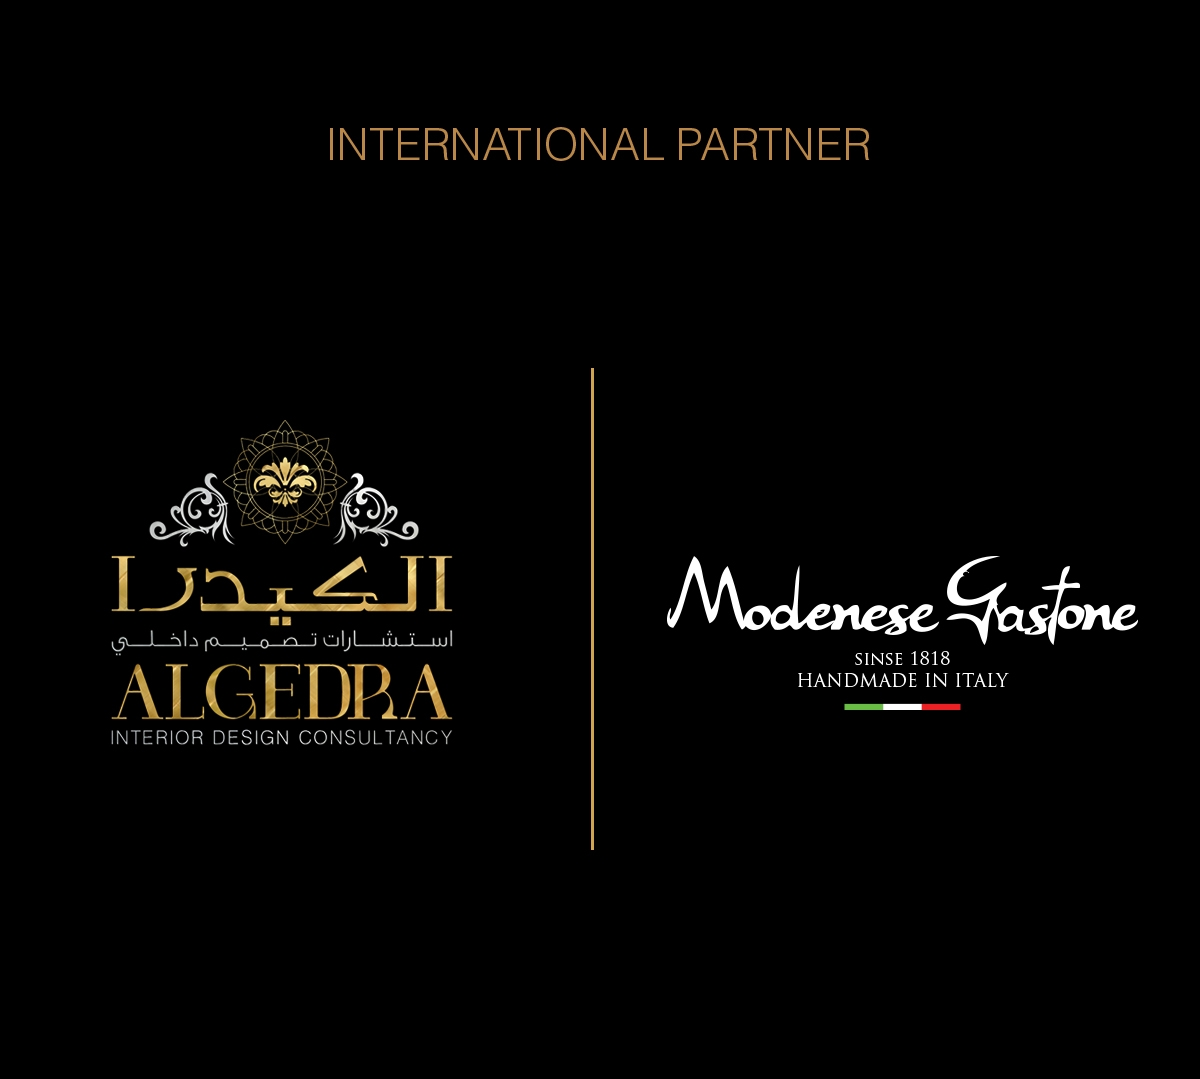 ALGEDRA Interior Design Partnership